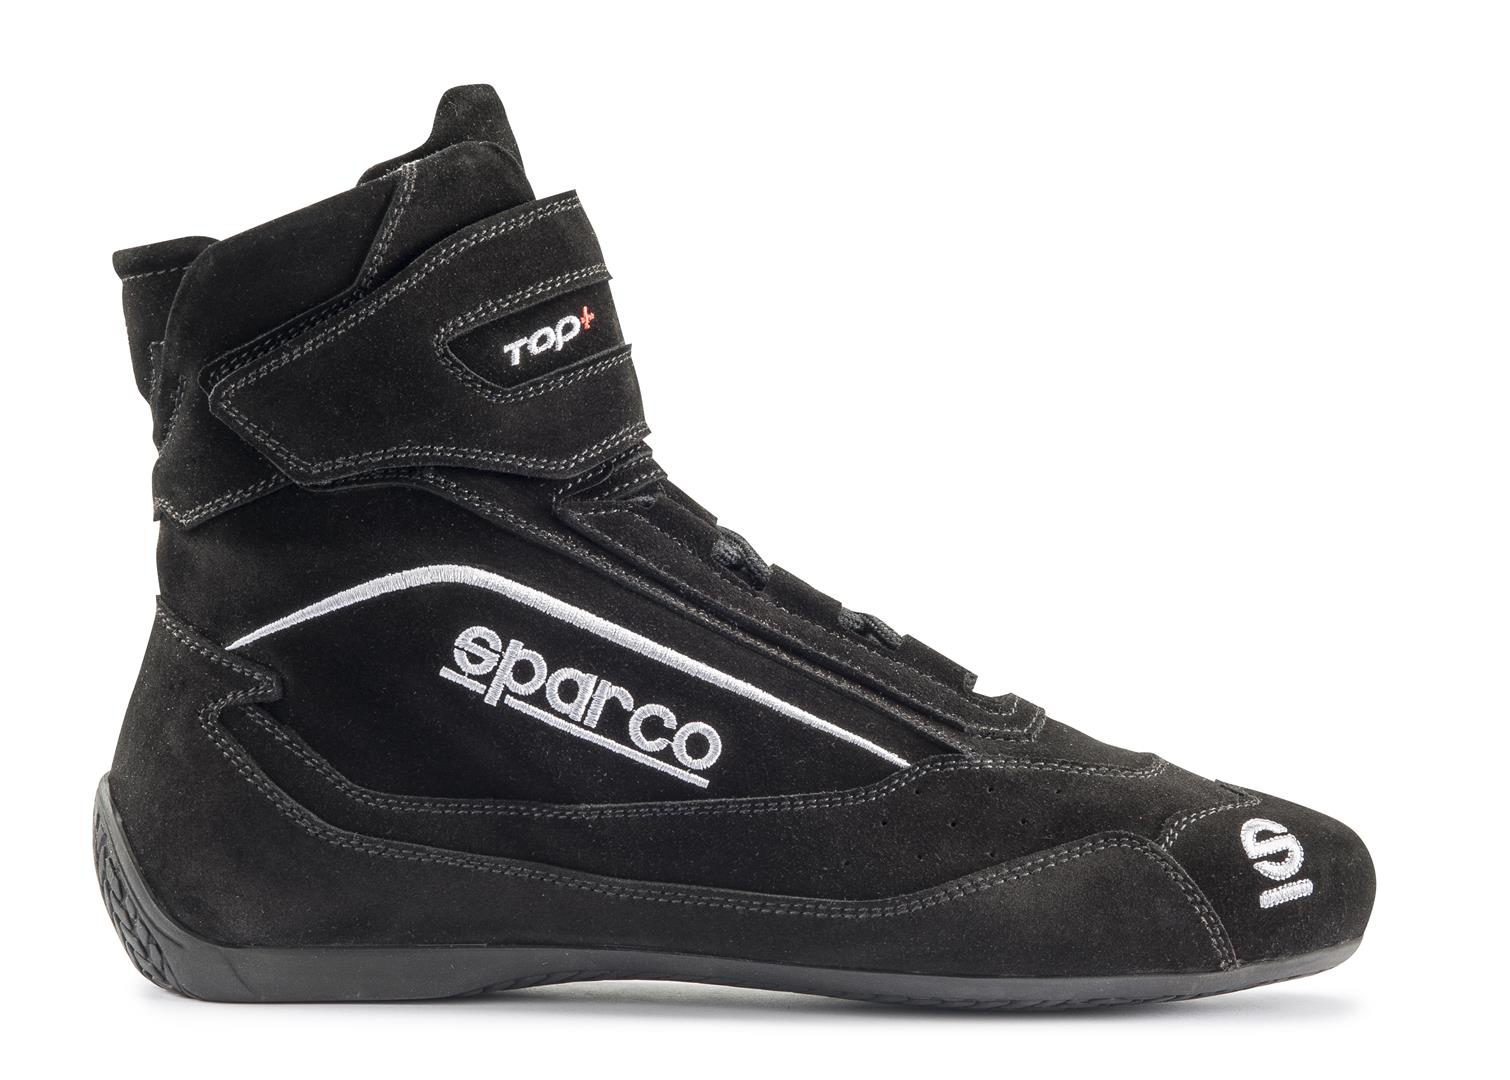 Sparco Black Top+ SH-5 Driving Shoes EU 43 | US 9.5 - 00121043NR